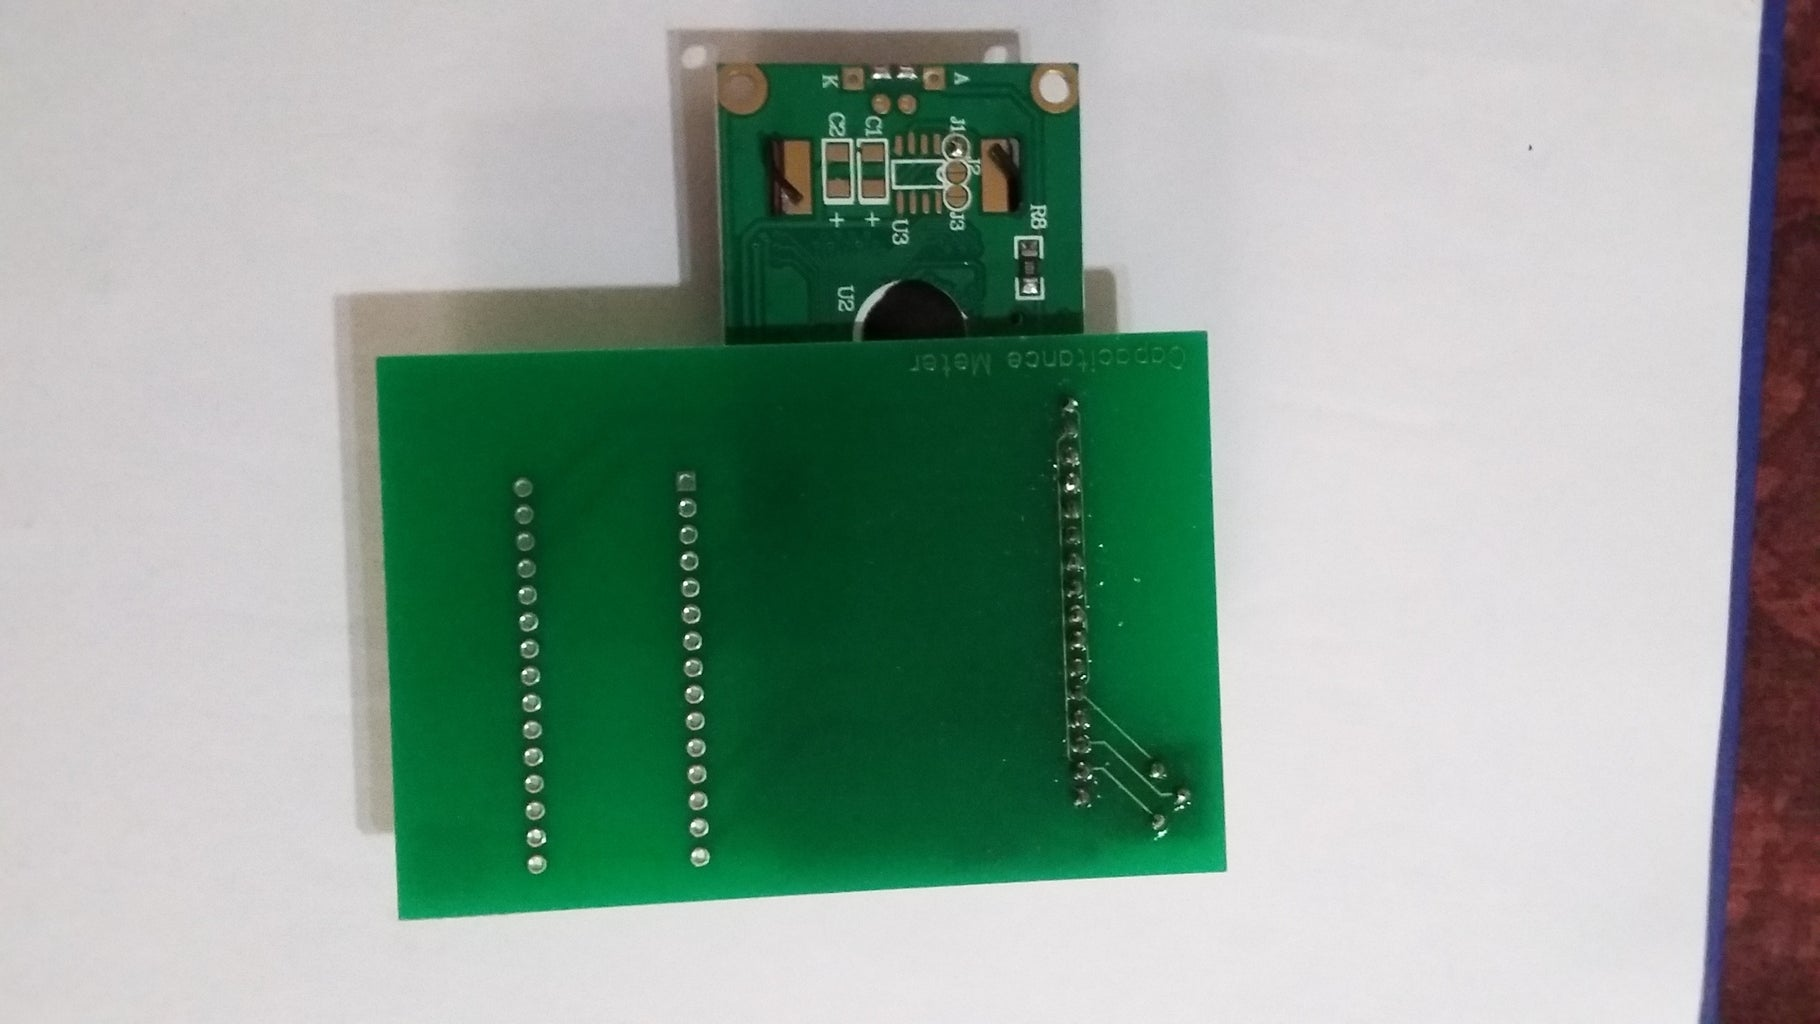 Installing the 16 X 2 LCD Display